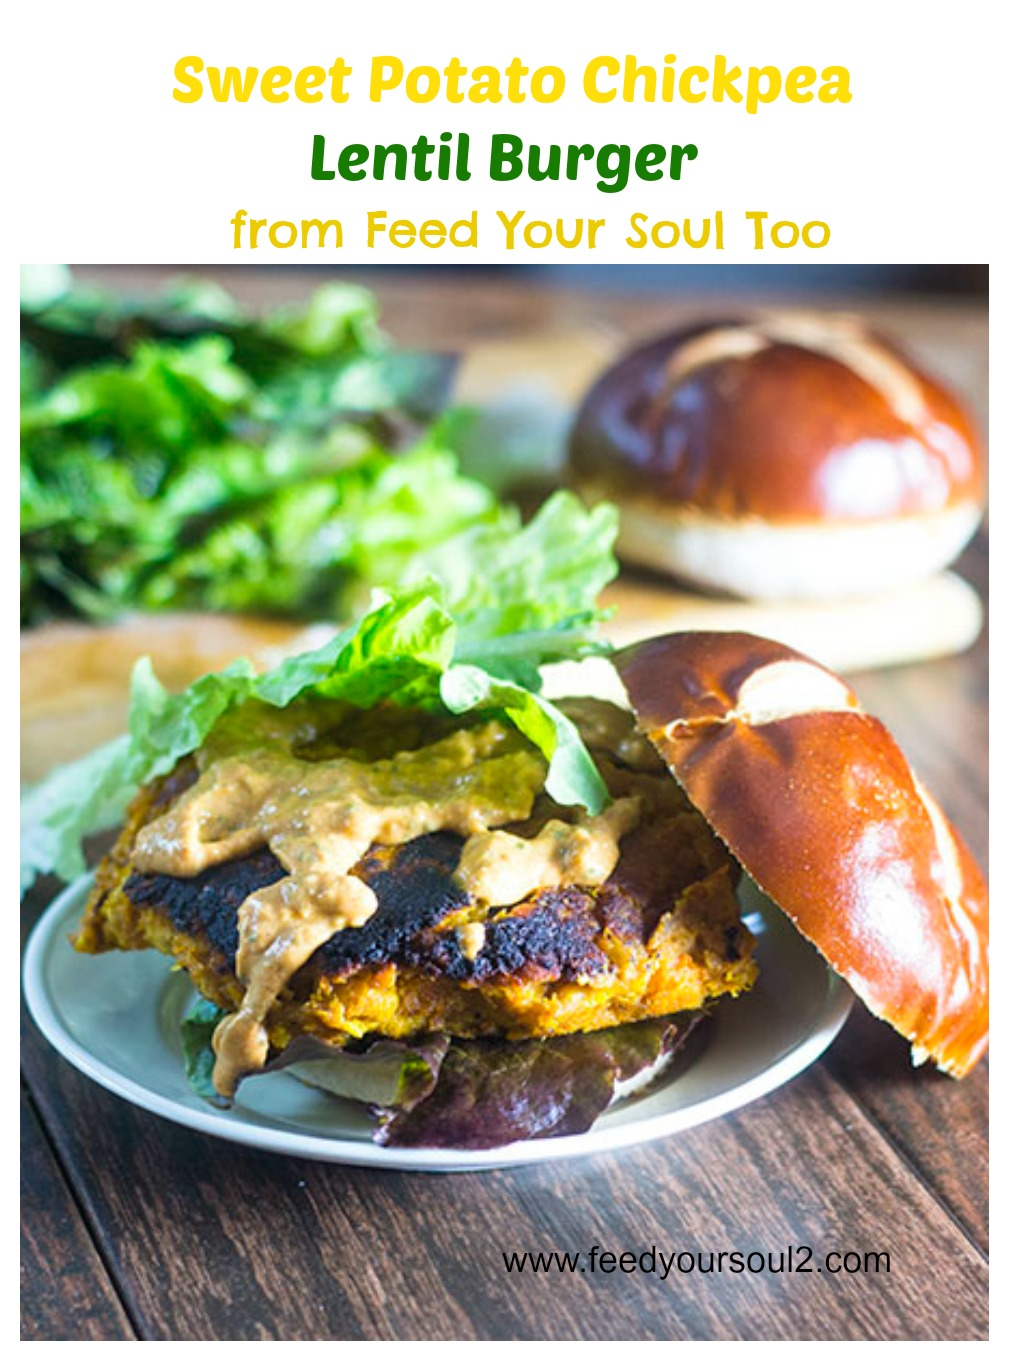 Sweet Potato Chickpea Lentil Burger #veggieburger #vegan #lentils | feedyoursoul2.com